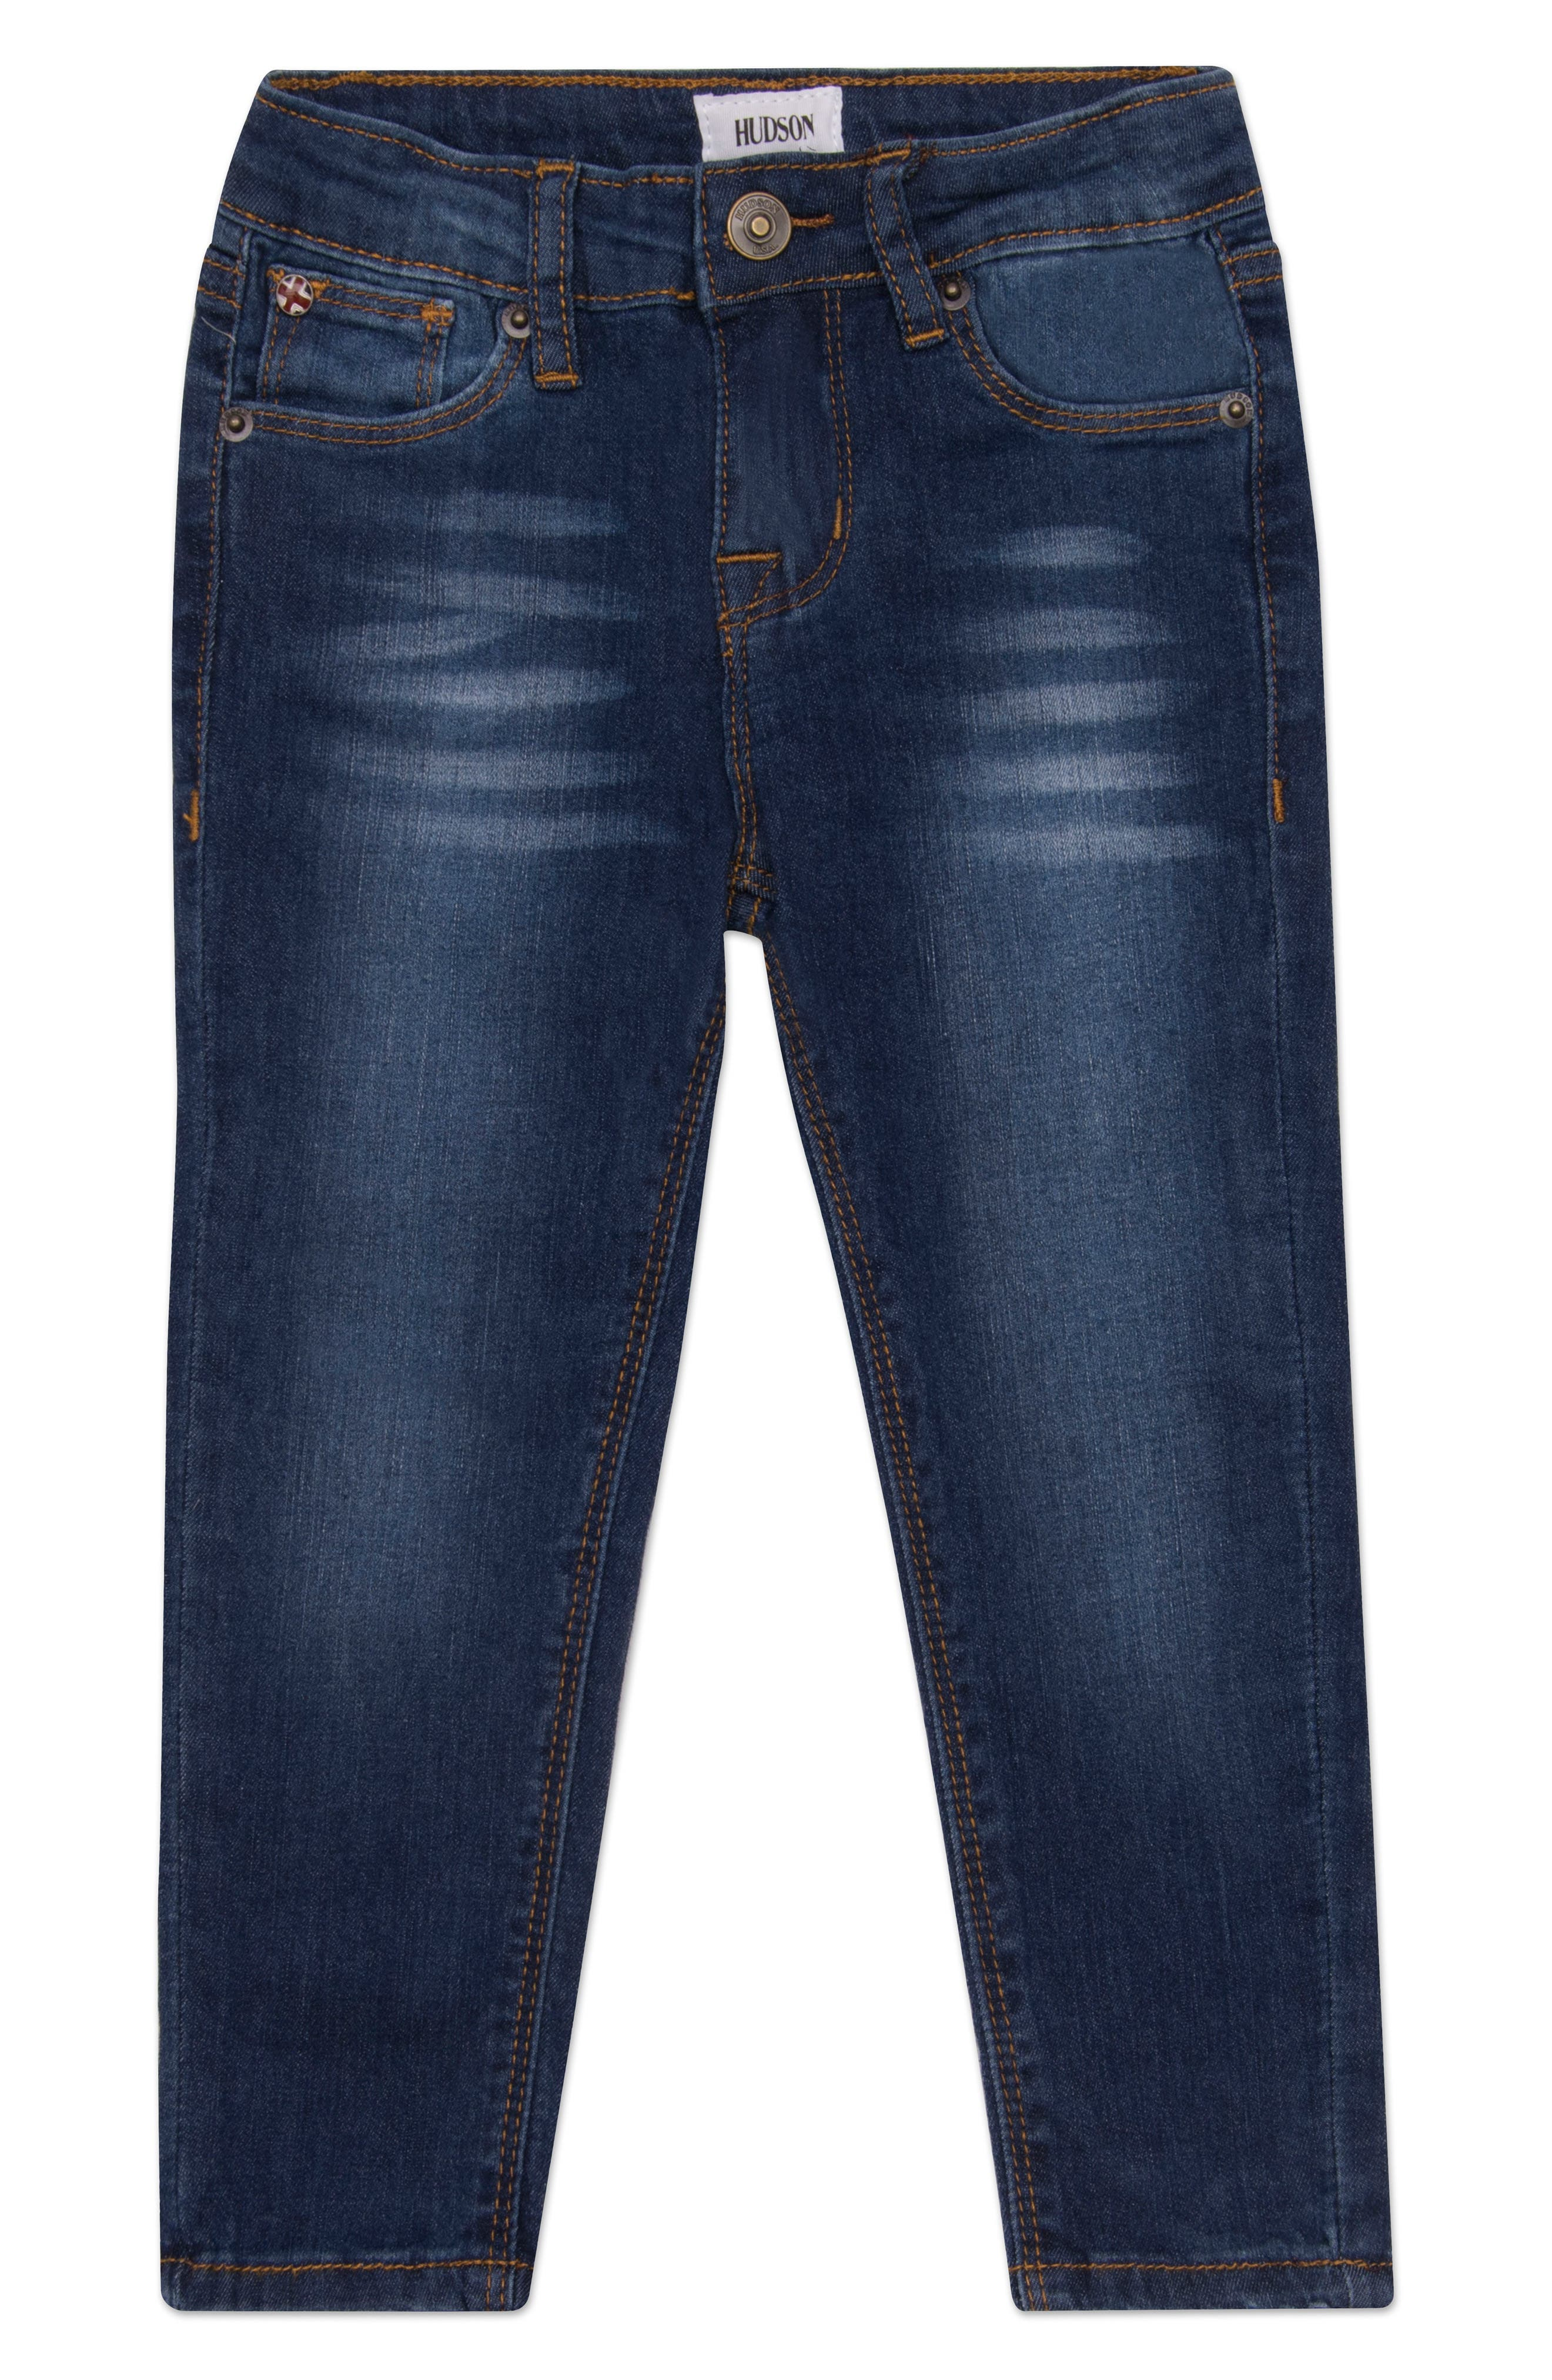 Main Image - Hudson Kids Christa Super Stretch Skinny Jeans (Baby Girls)